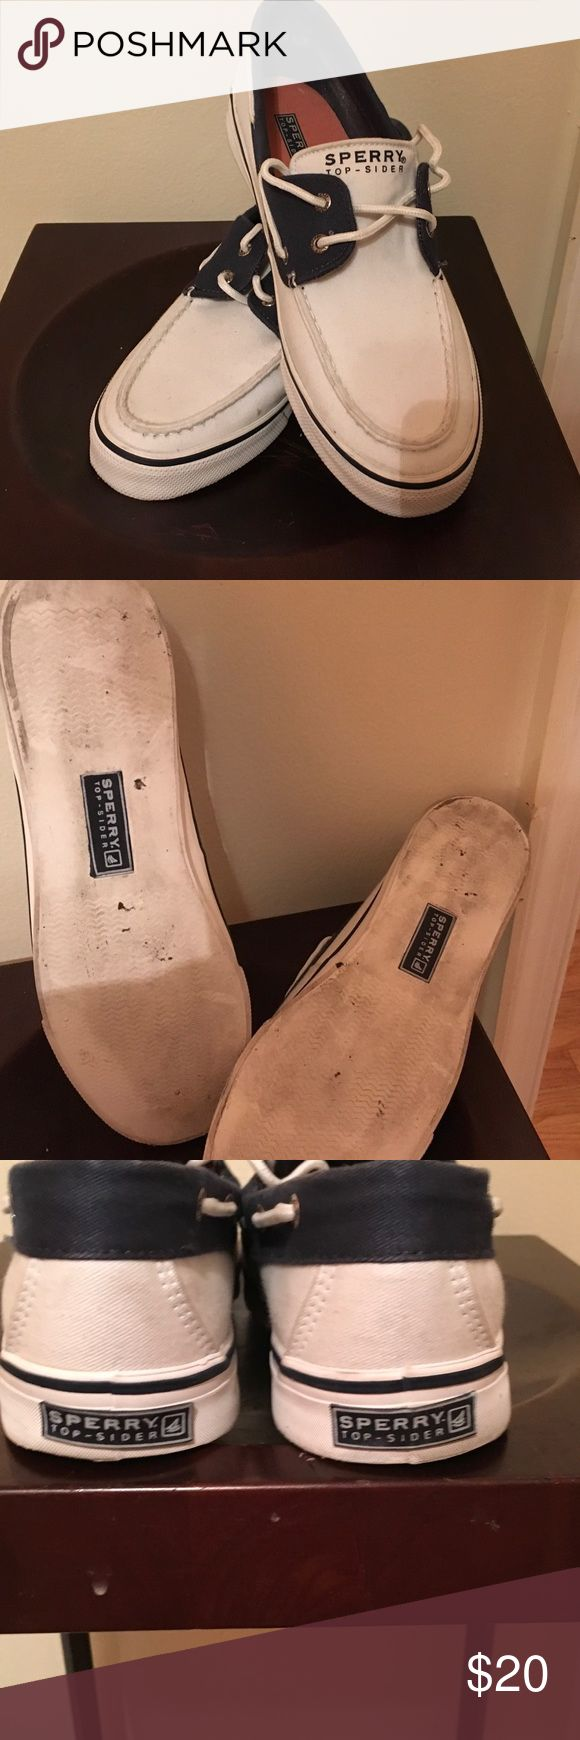 Canvas Sperry Topsider Boat Shoes Super cute canvas boat shoes. White with navy trim. Clean and in excellent condition. Only worn a handful of times. Size 10, but run narrow. Sperry Top-Sider Shoes Flats & Loafers